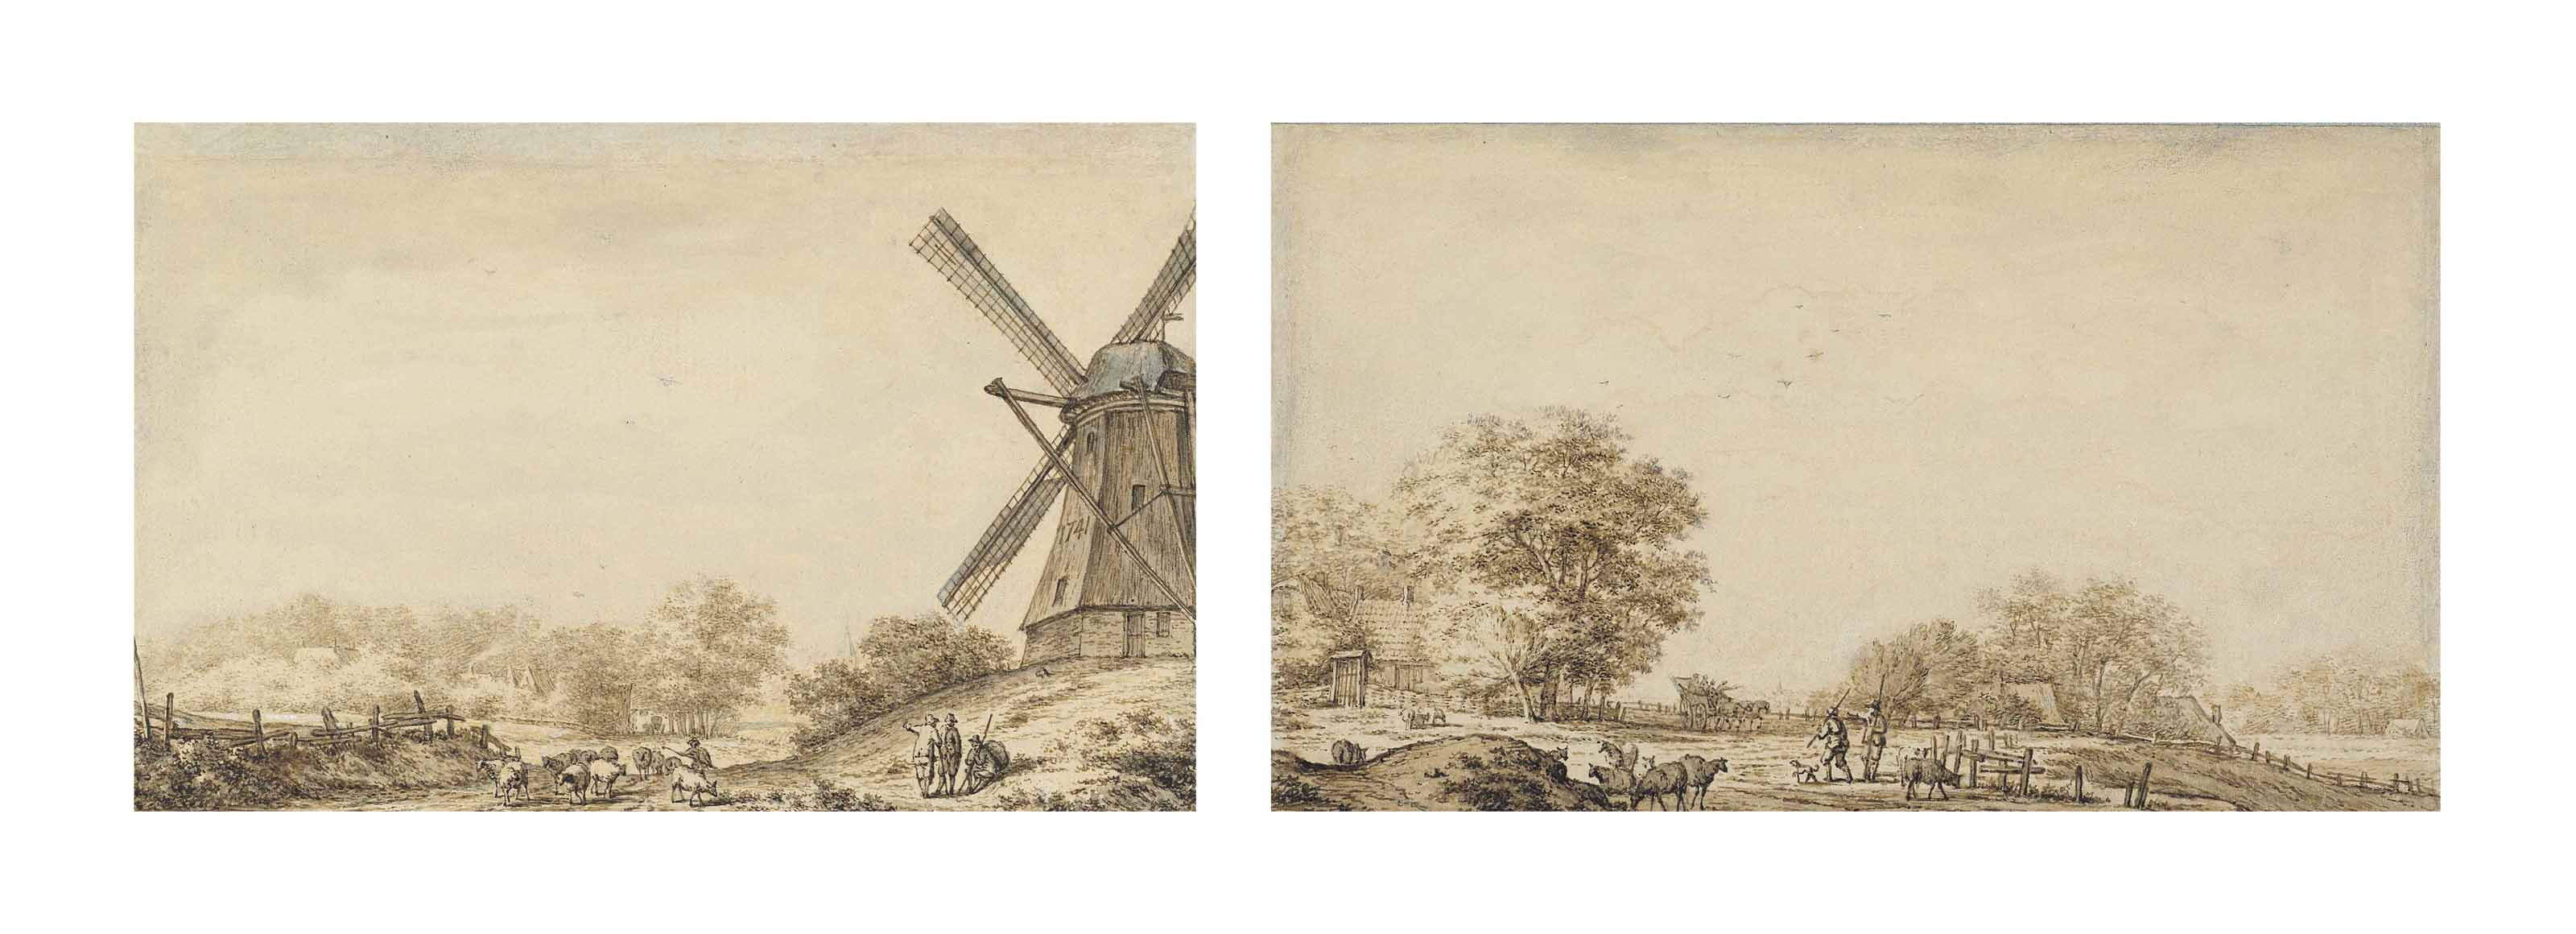 A landscape with a windmill and herdsmen with their flock of sheep; and A landscape with herdsmen and a carriage in the background